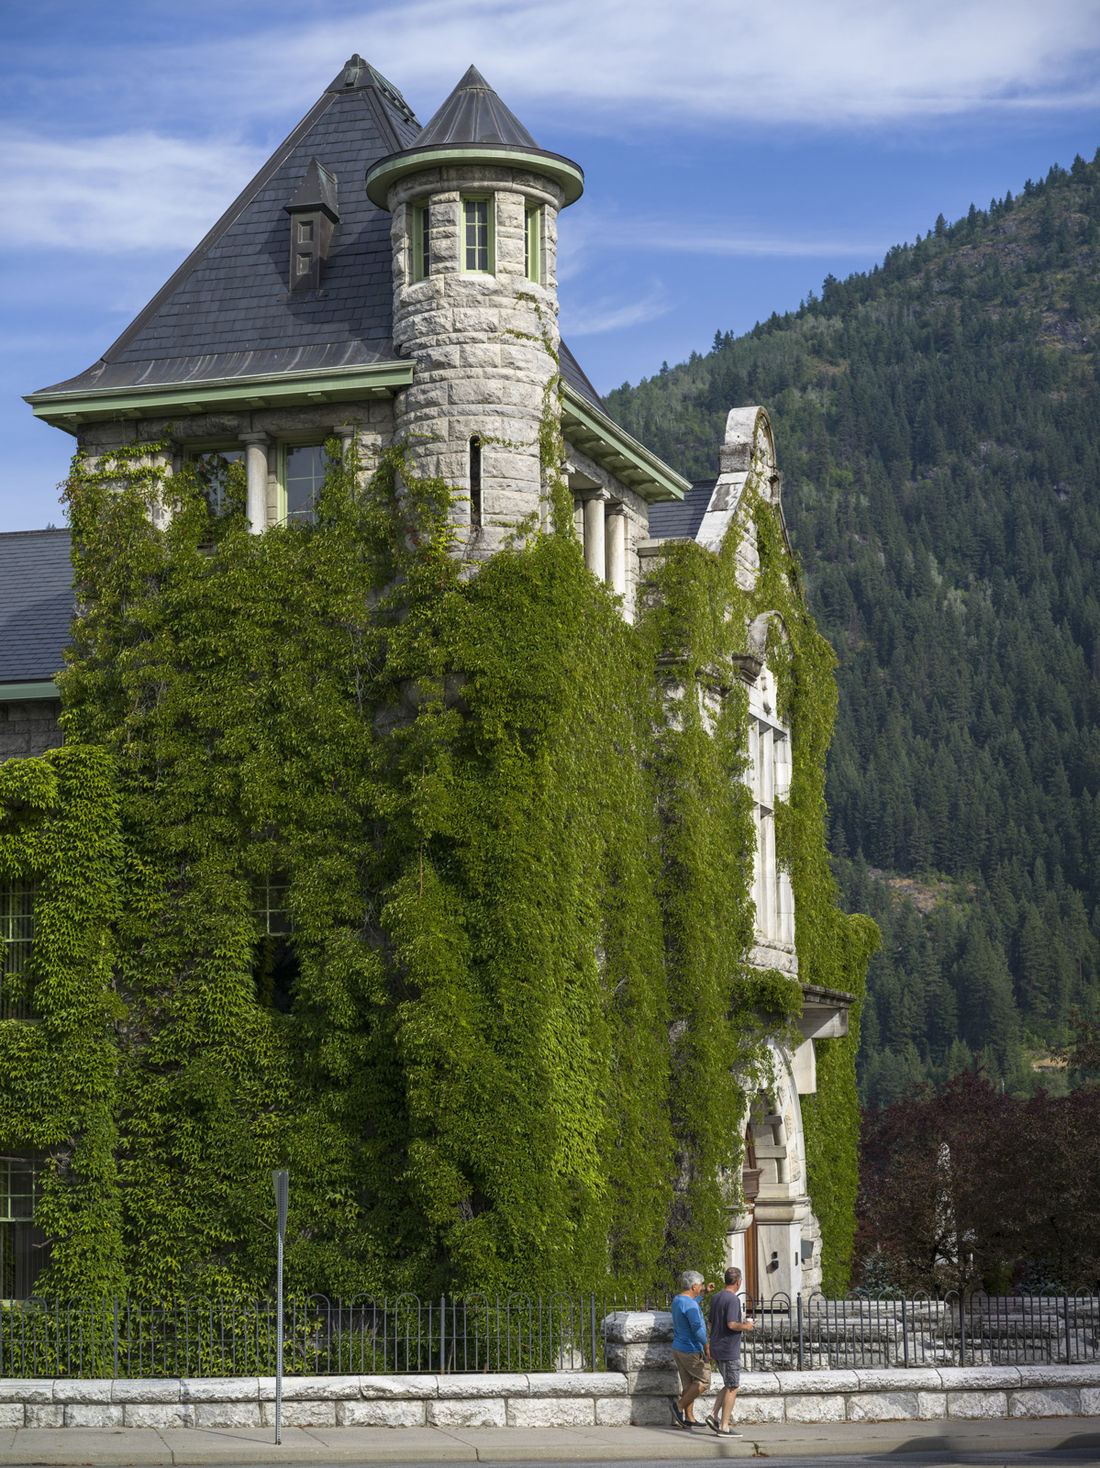 Explore the historic city of Nelson, just a short distance away from Kokanee Mountain Zipline.